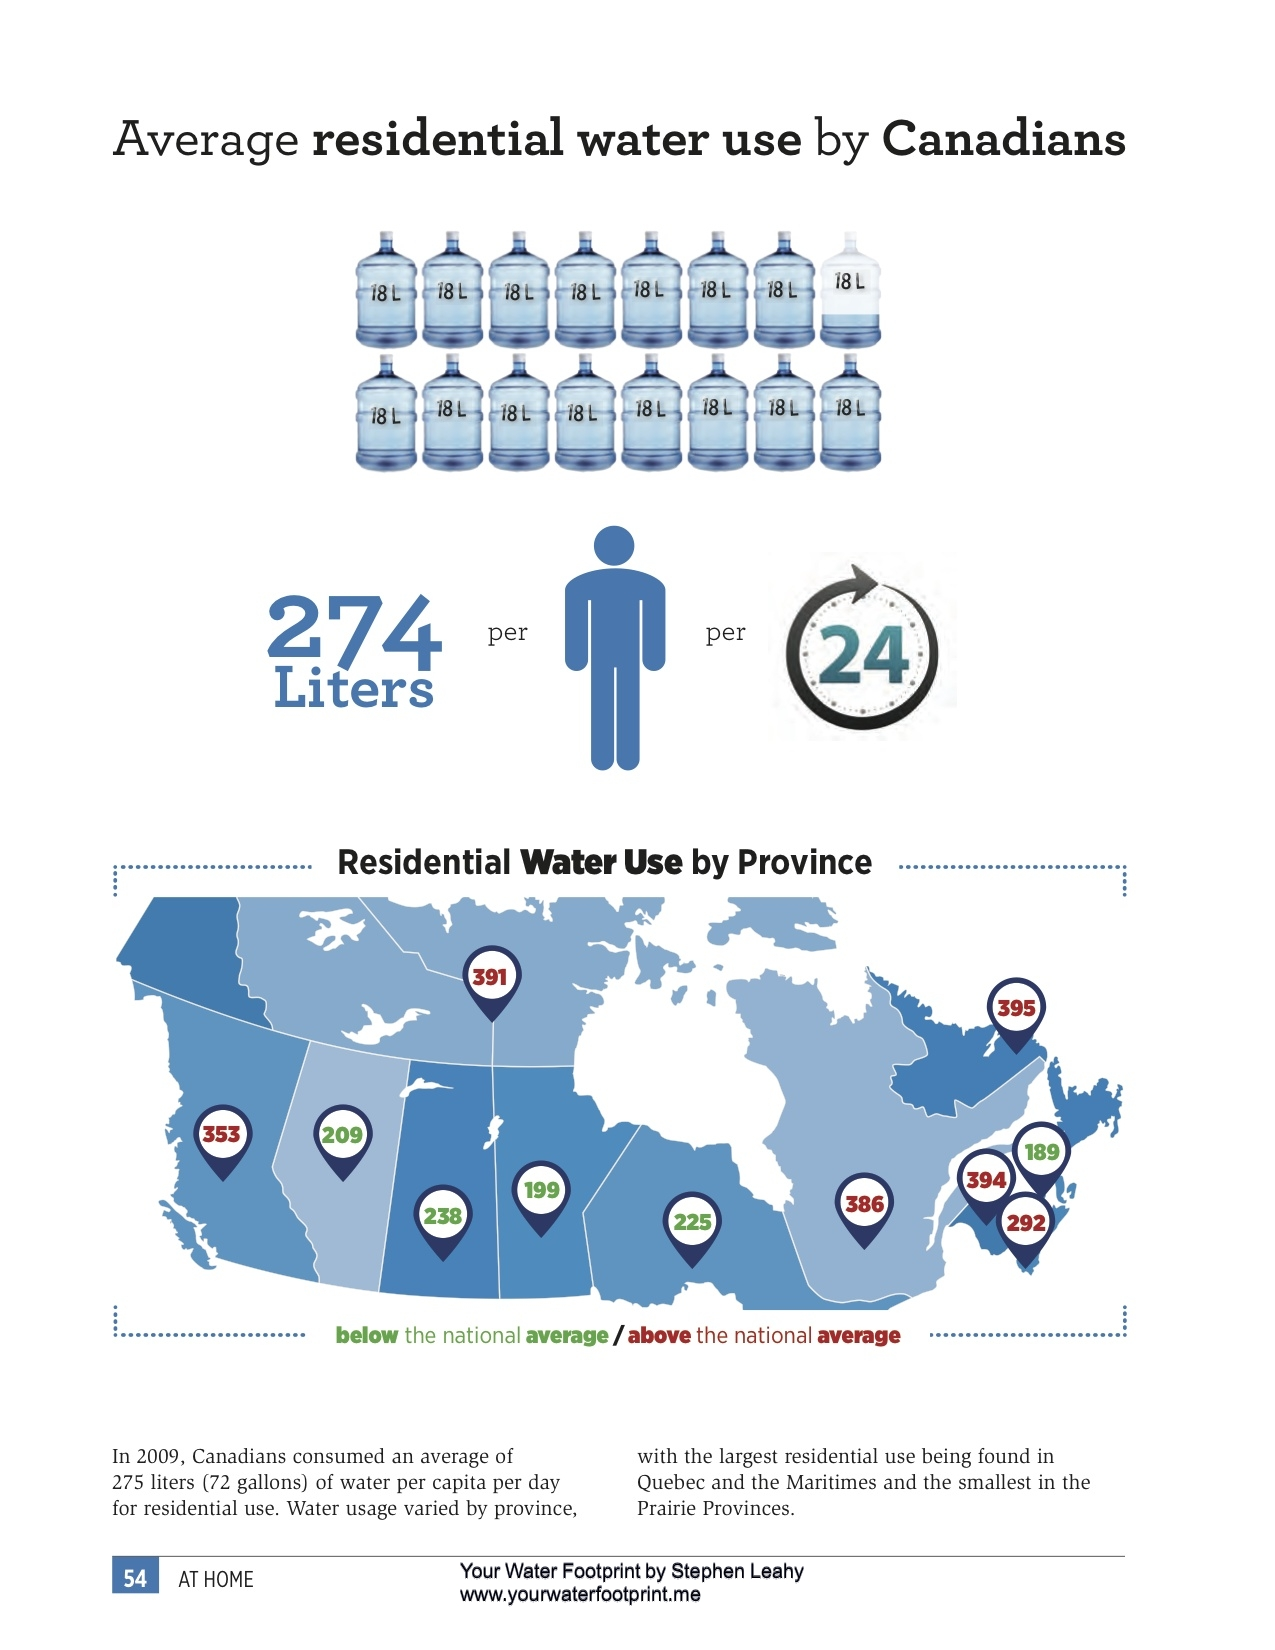 virtual water   Your Water Footprint by Stephen Leahy   Page 2